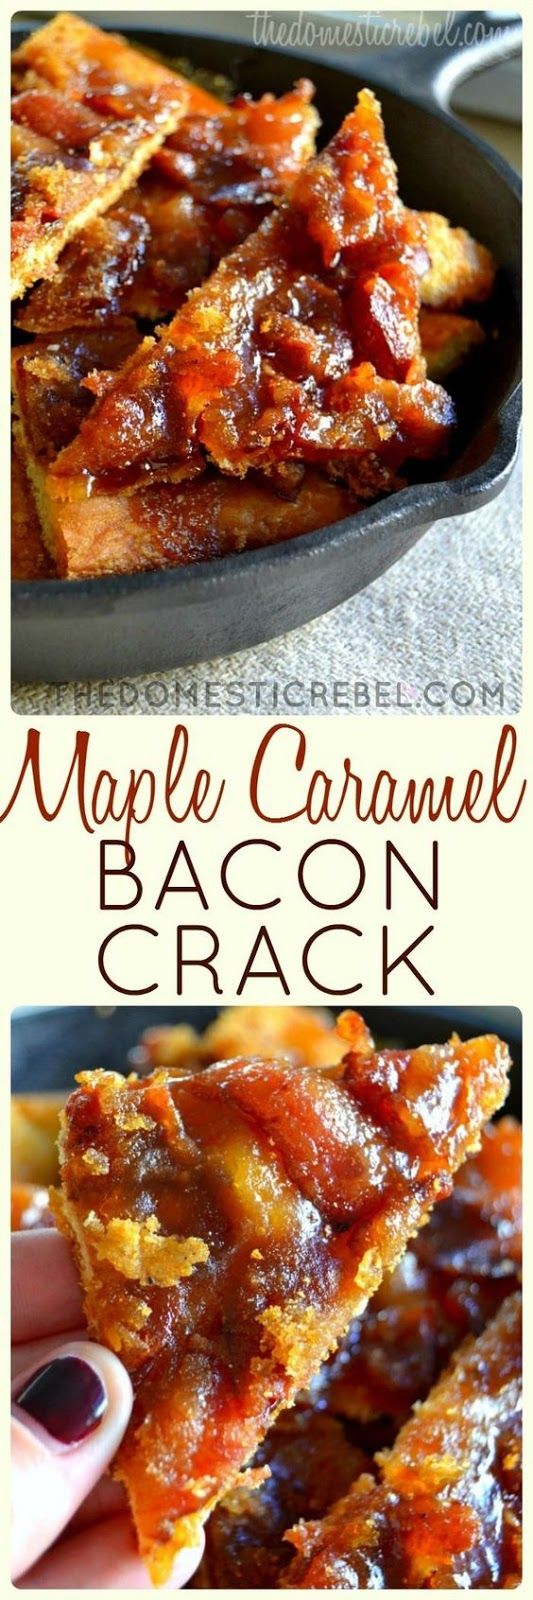 This Maple Caramel Bacon Crack is to-die for! Such an easy, foolproof Anyway. If there's one thing I want to eat before I die, it's definitely this Maple Caramel Bacon Crack. It's highly addictive and extremely delicious. Smoky, sweet, crunchy, buttery, chewy — the perfect conglomerate of badassness #maple #caramel #bacon #crack #easyrecipes